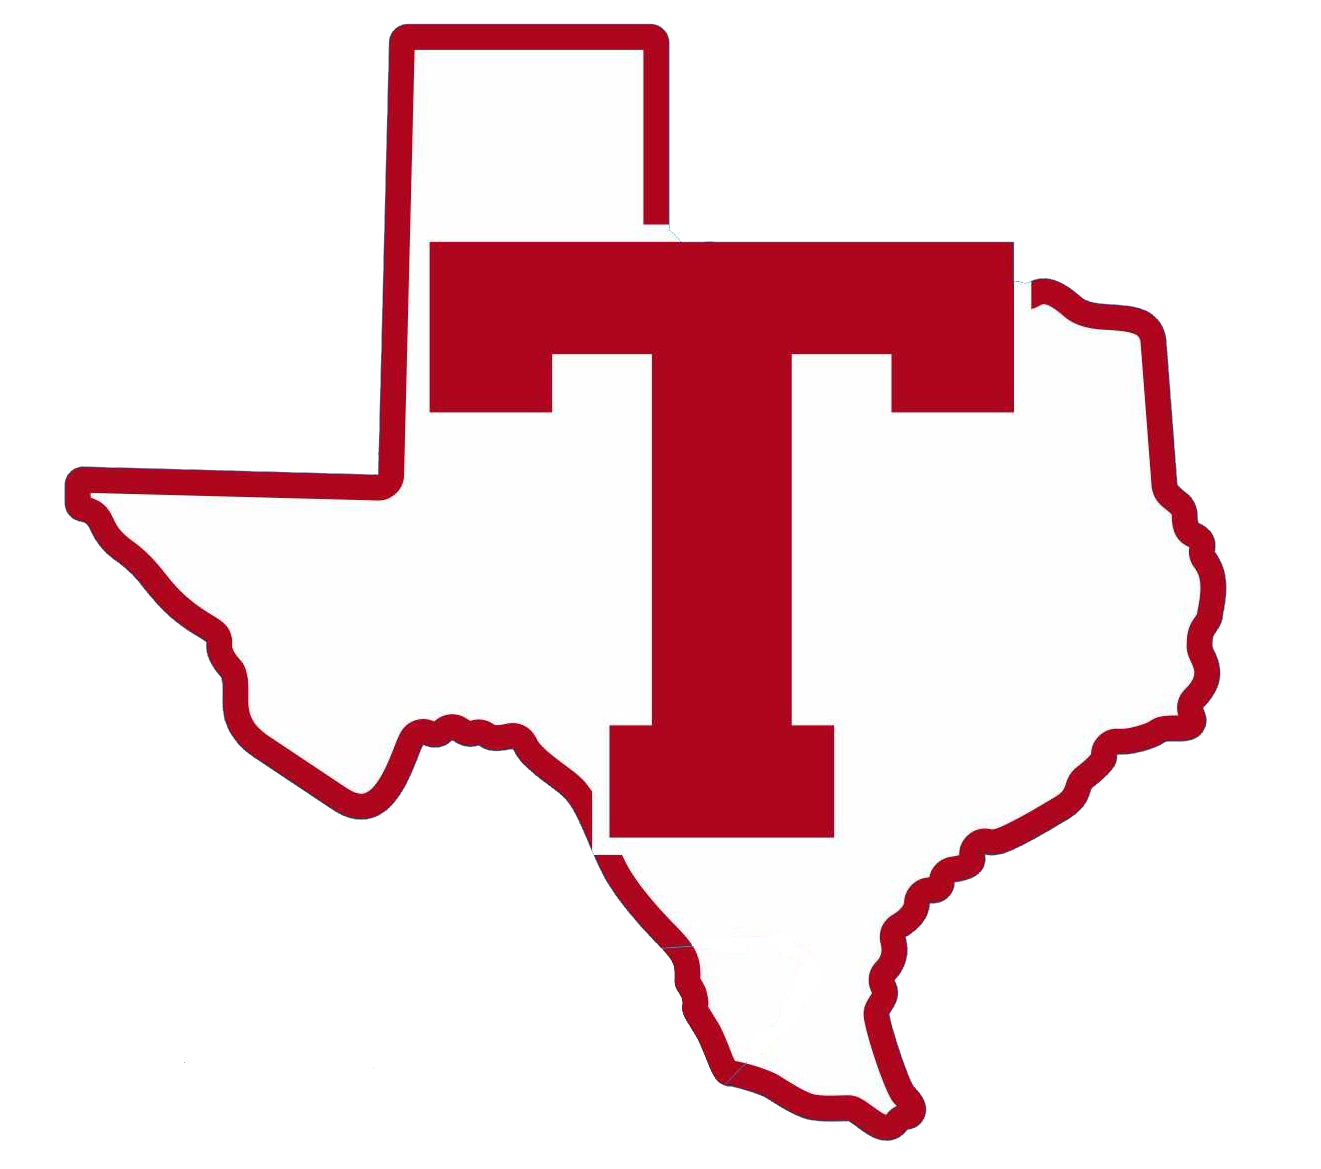 Big Red T with Texas outline